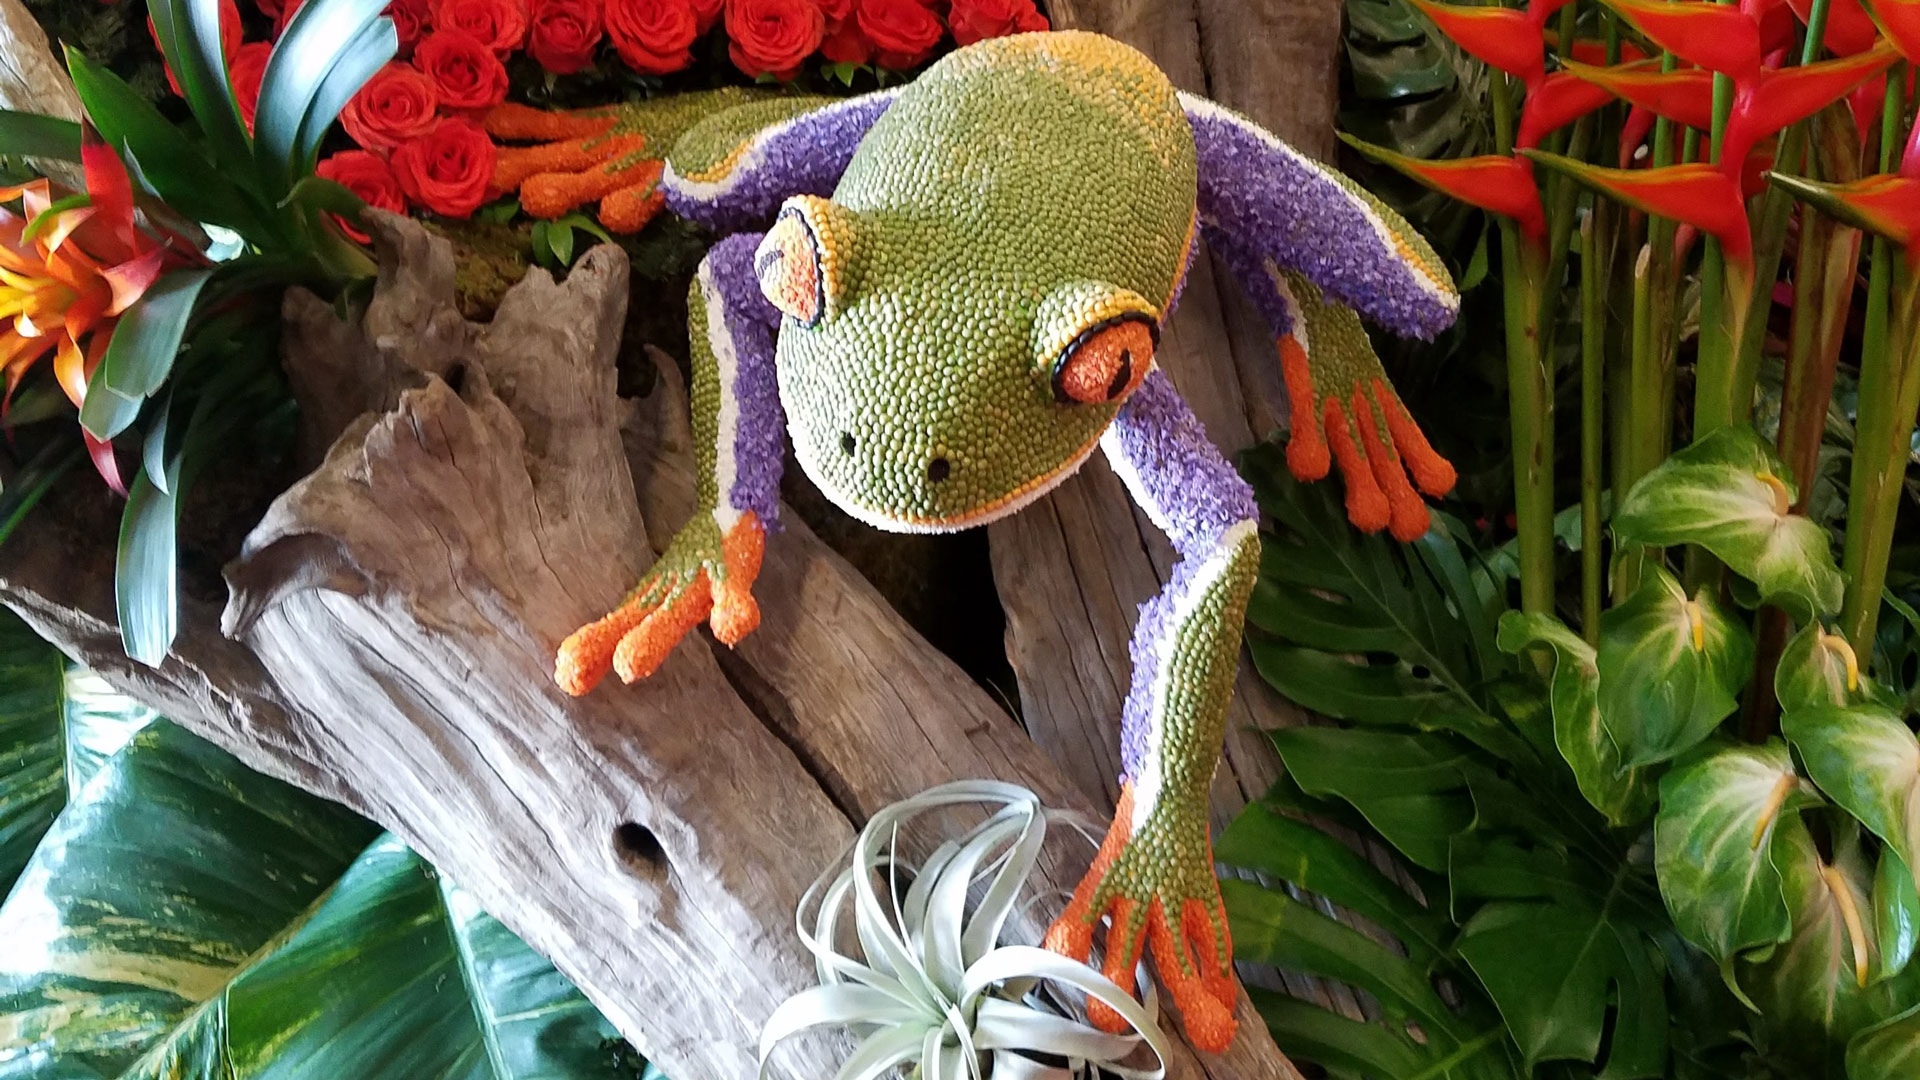 This frog for a Rose Parade float is made from thousands of peas, lentils and other natural products, as required by the rules.